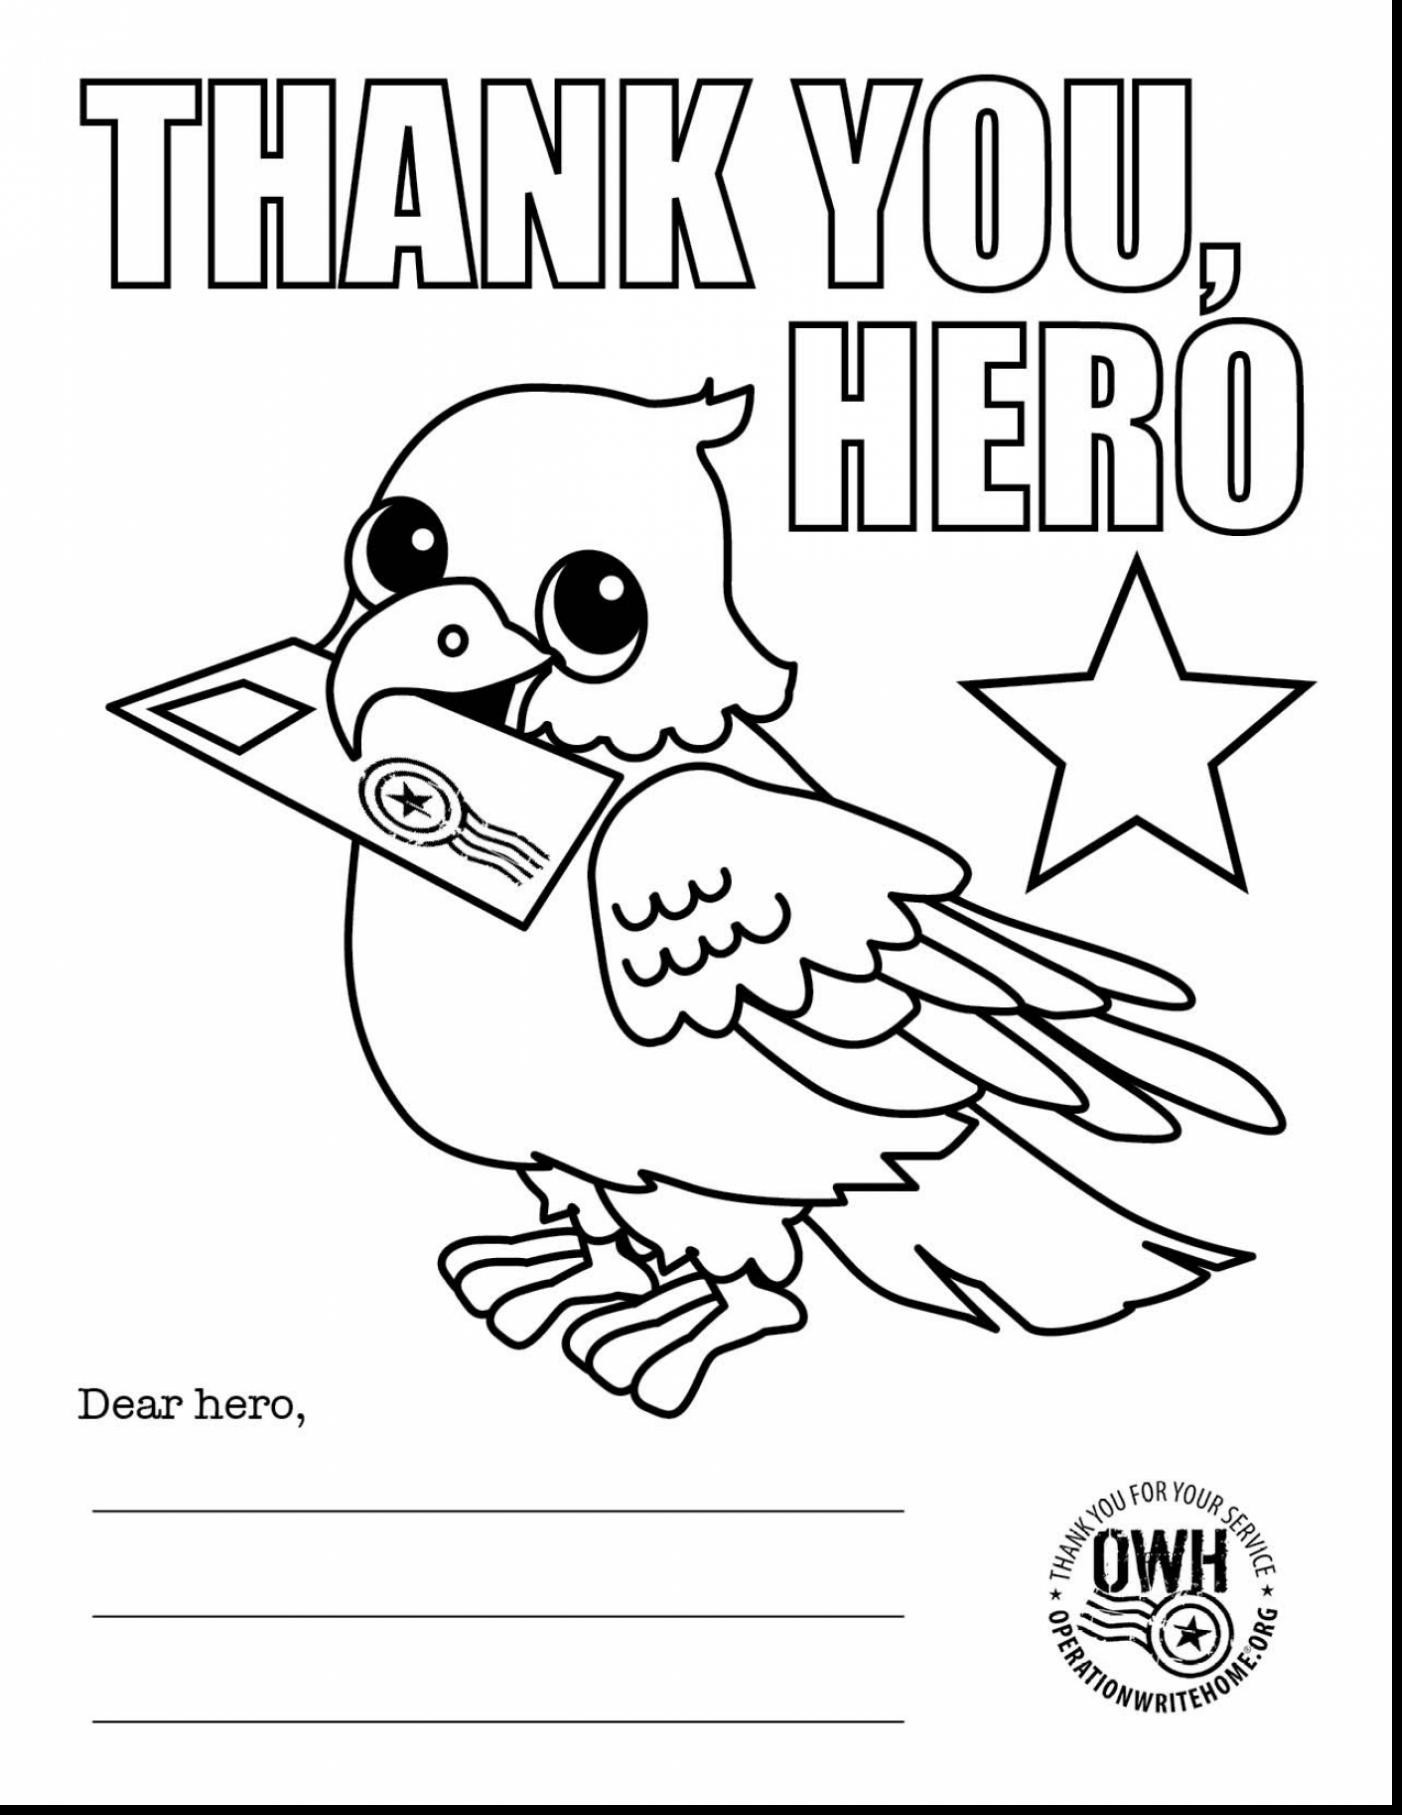 Christmas Coloring Pages For Veterans With Day Pdf Elegant Thank You Sheets